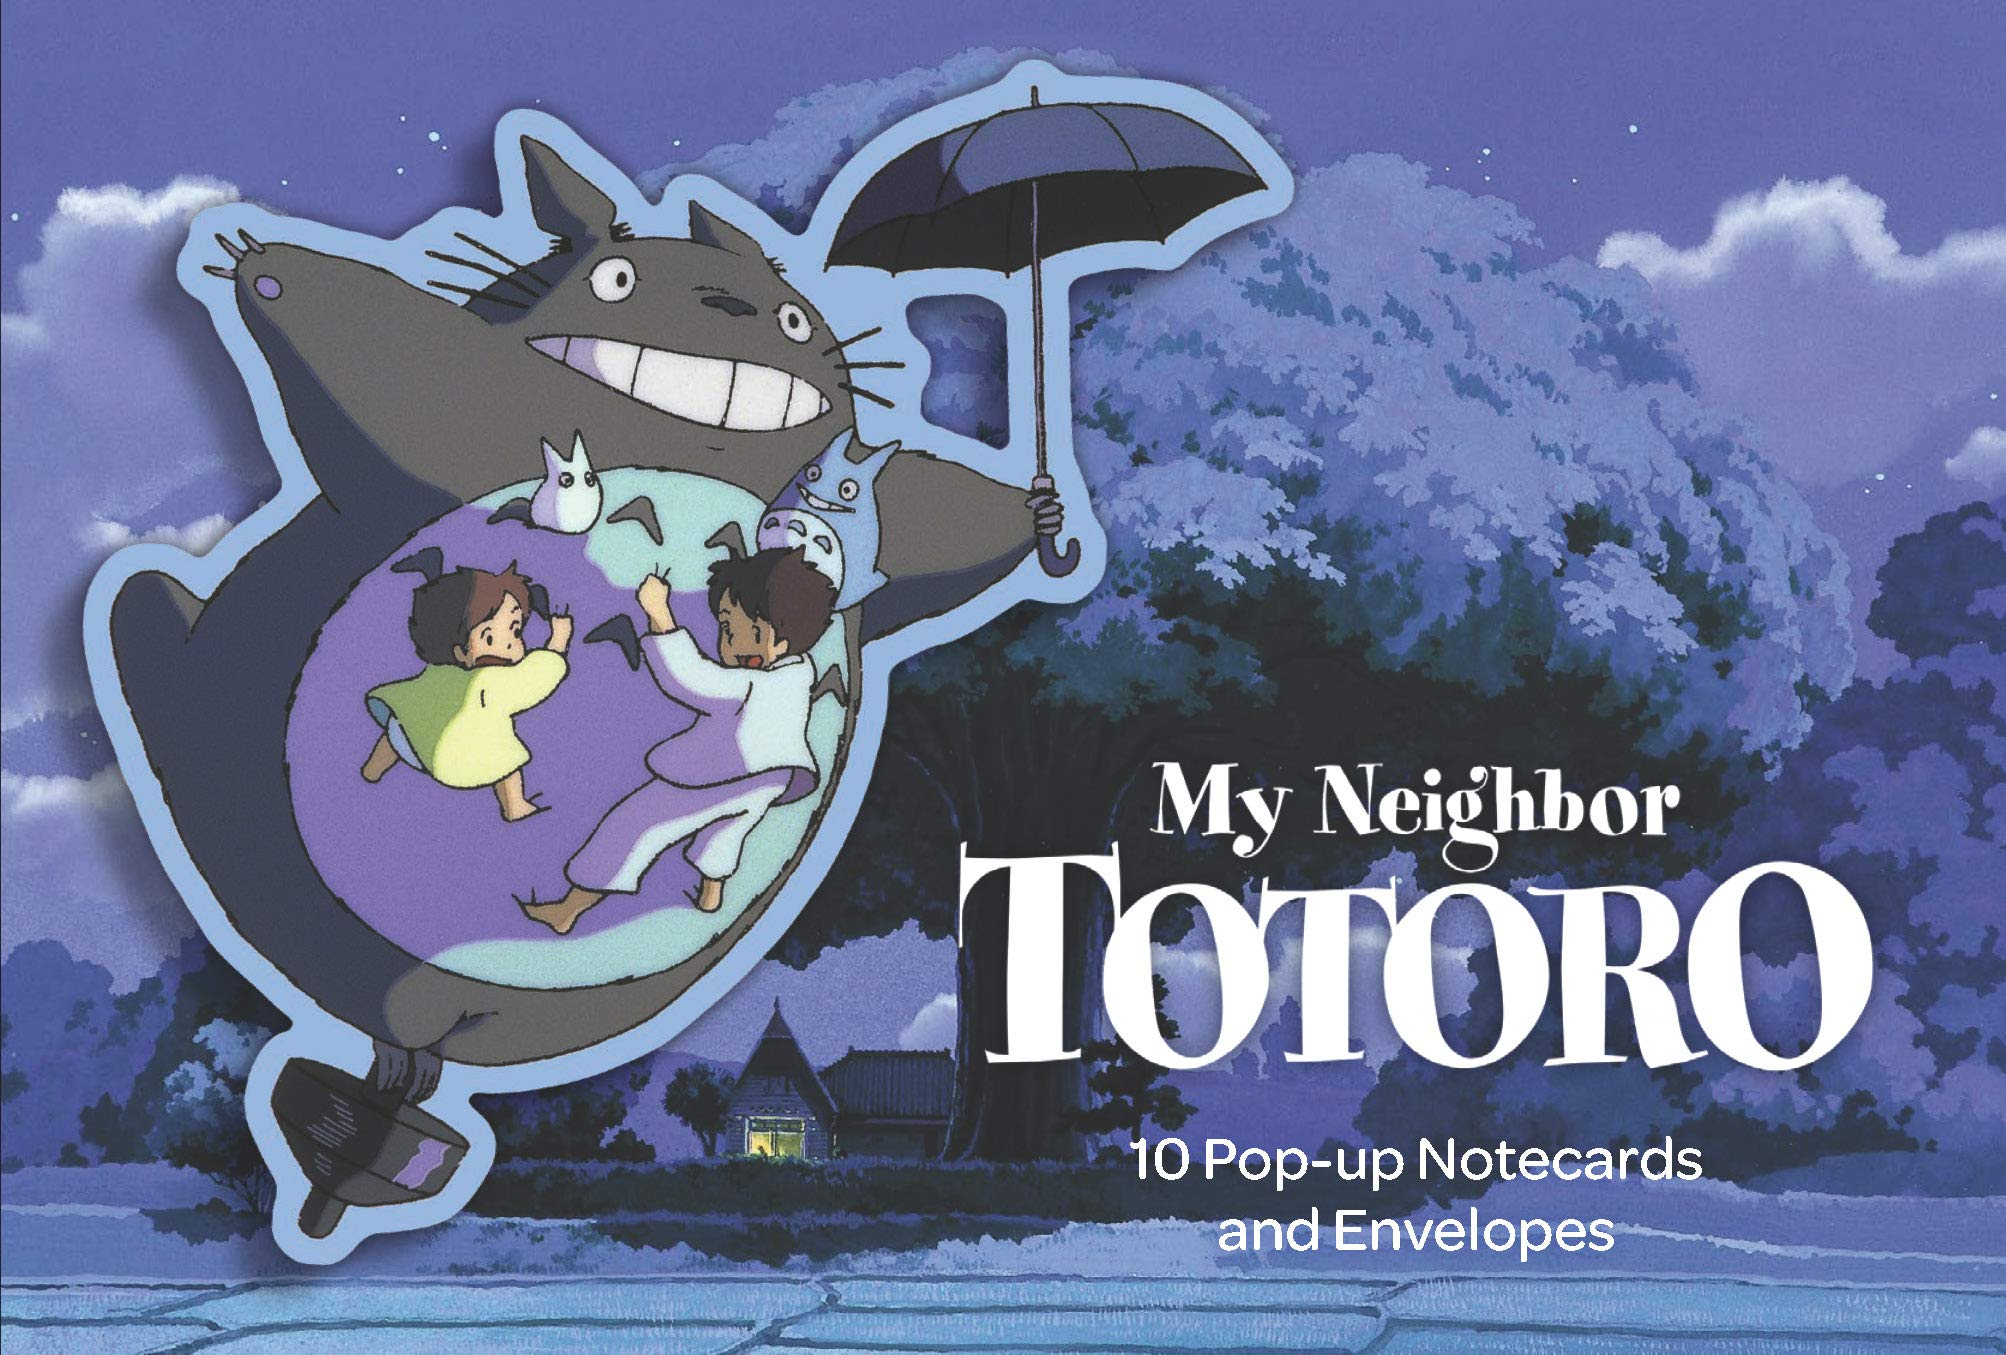 Buy My Neighbor Totoro Pop-Up Notecards